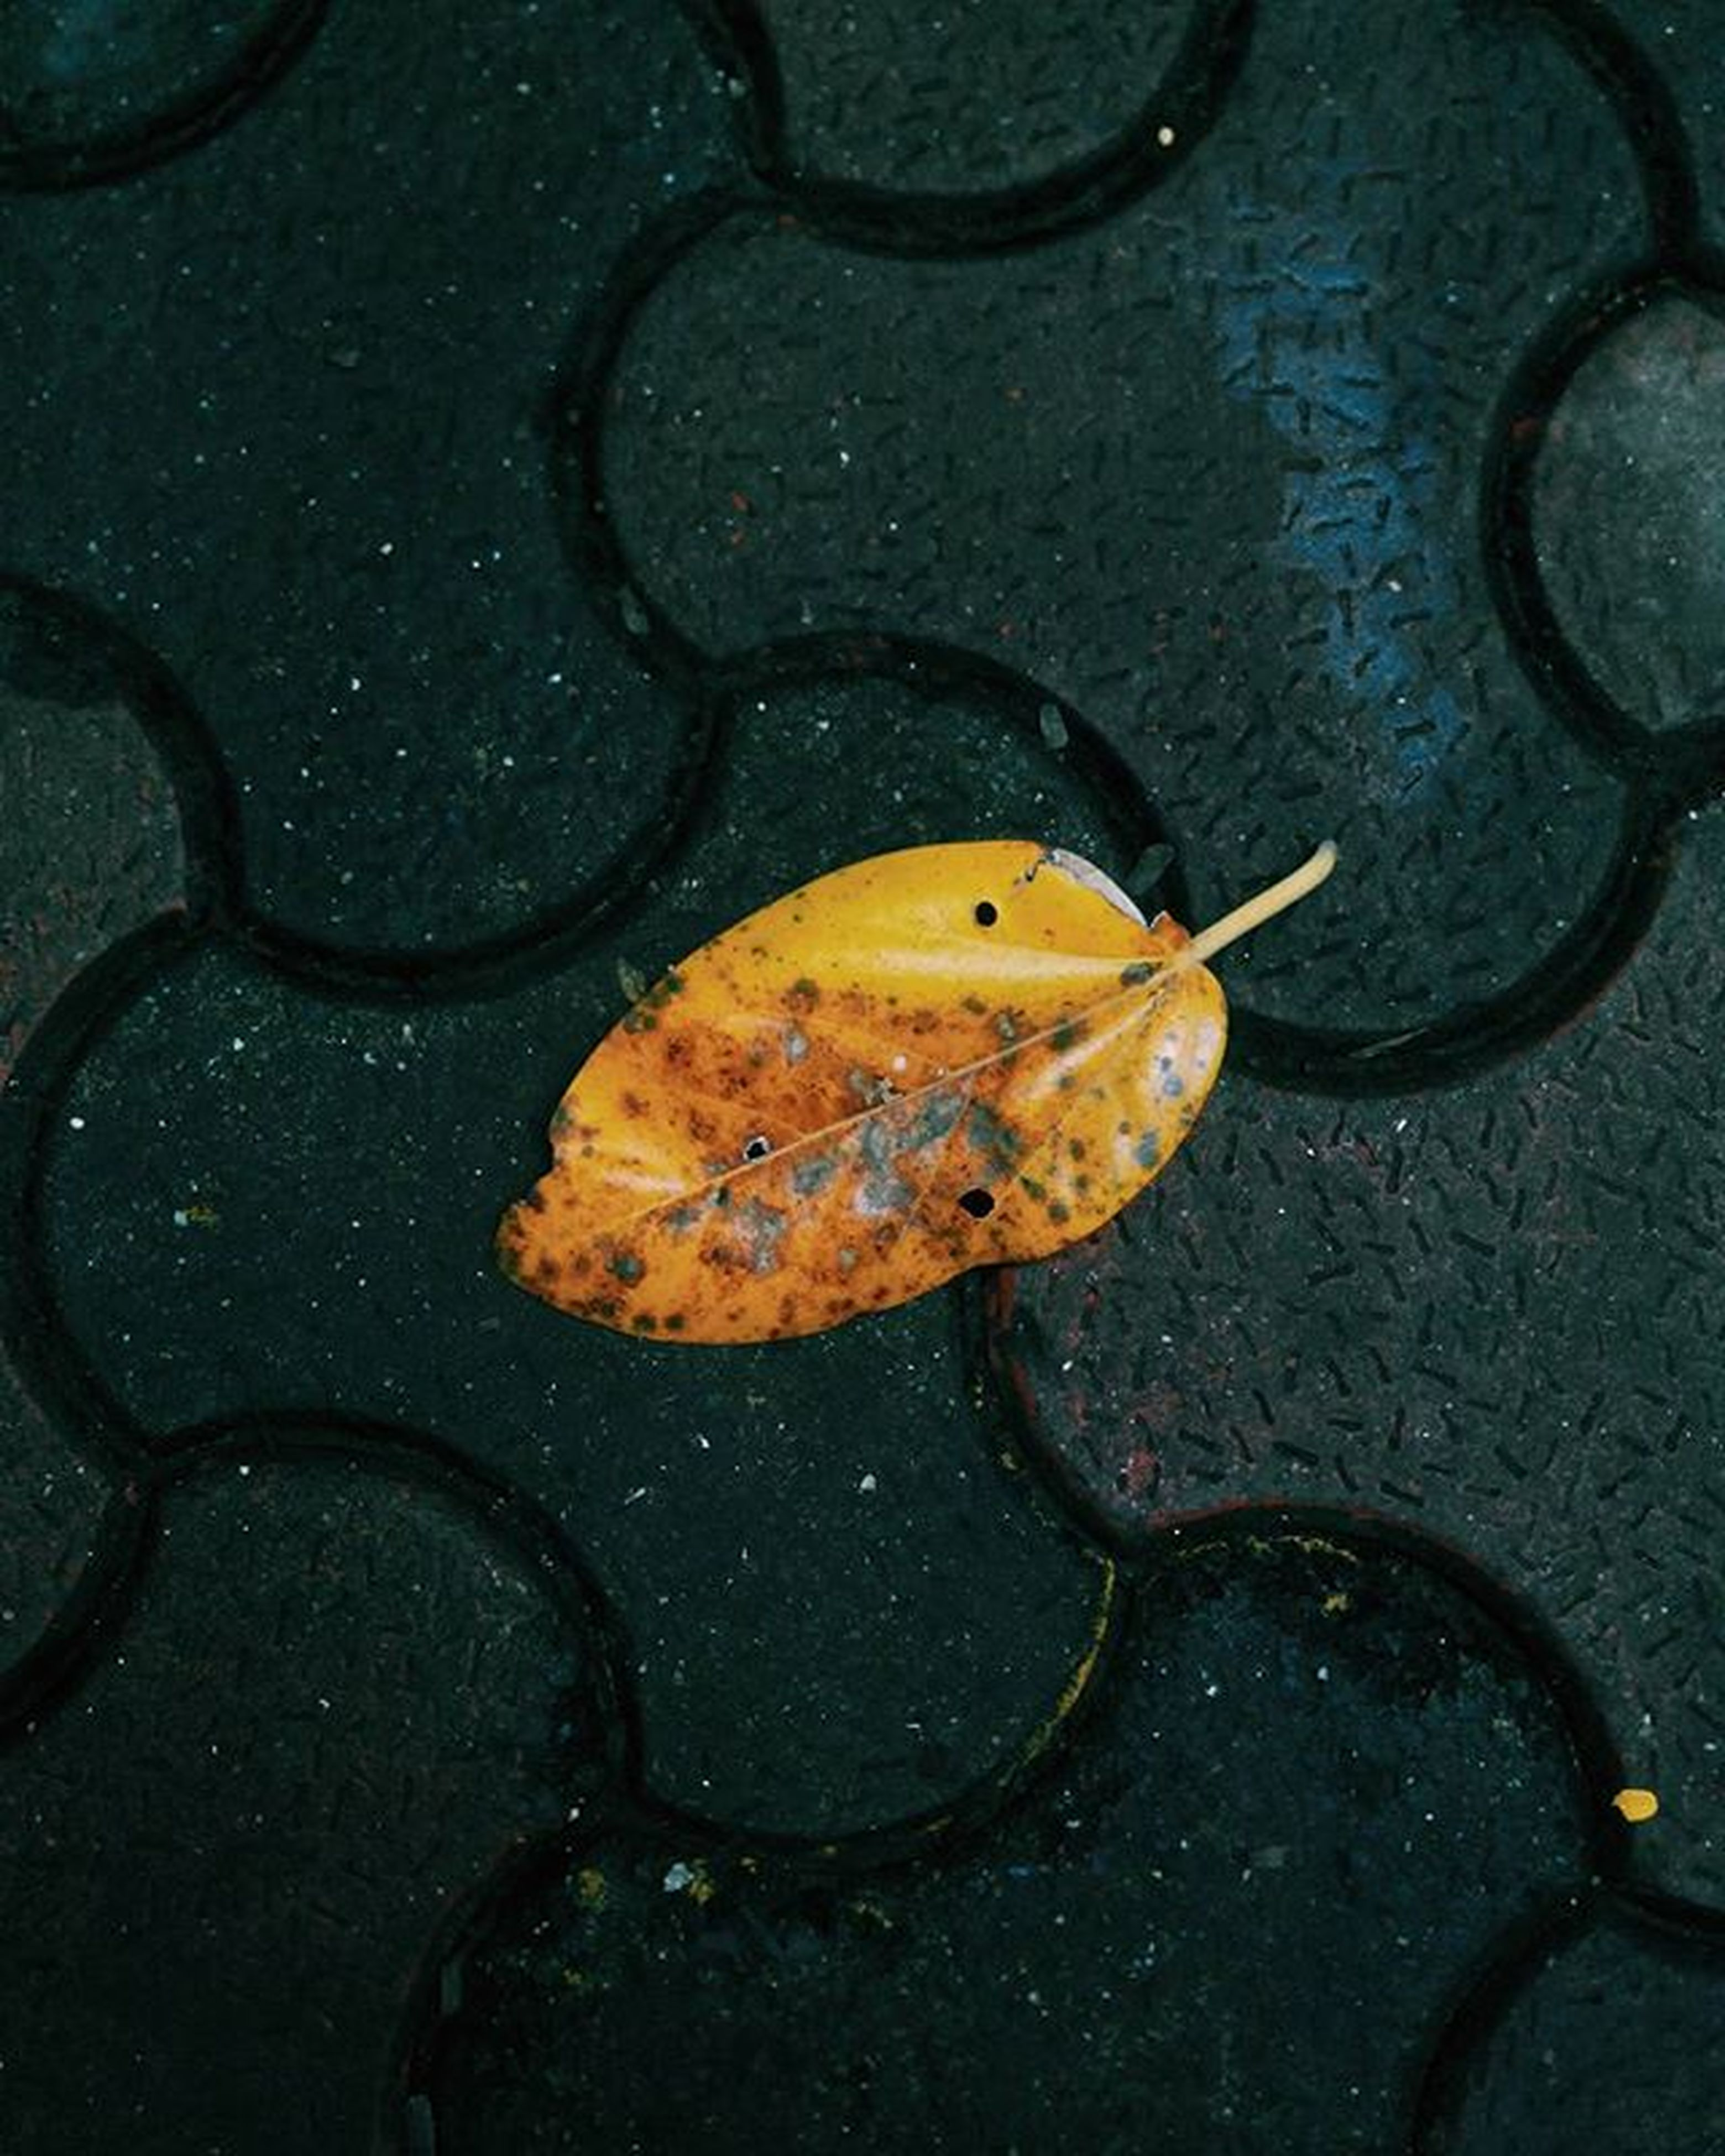 yellow, high angle view, close-up, orange color, autumn, nature, dry, leaf, outdoors, no people, day, change, fragility, fallen, natural pattern, directly above, textured, season, sunlight, pattern